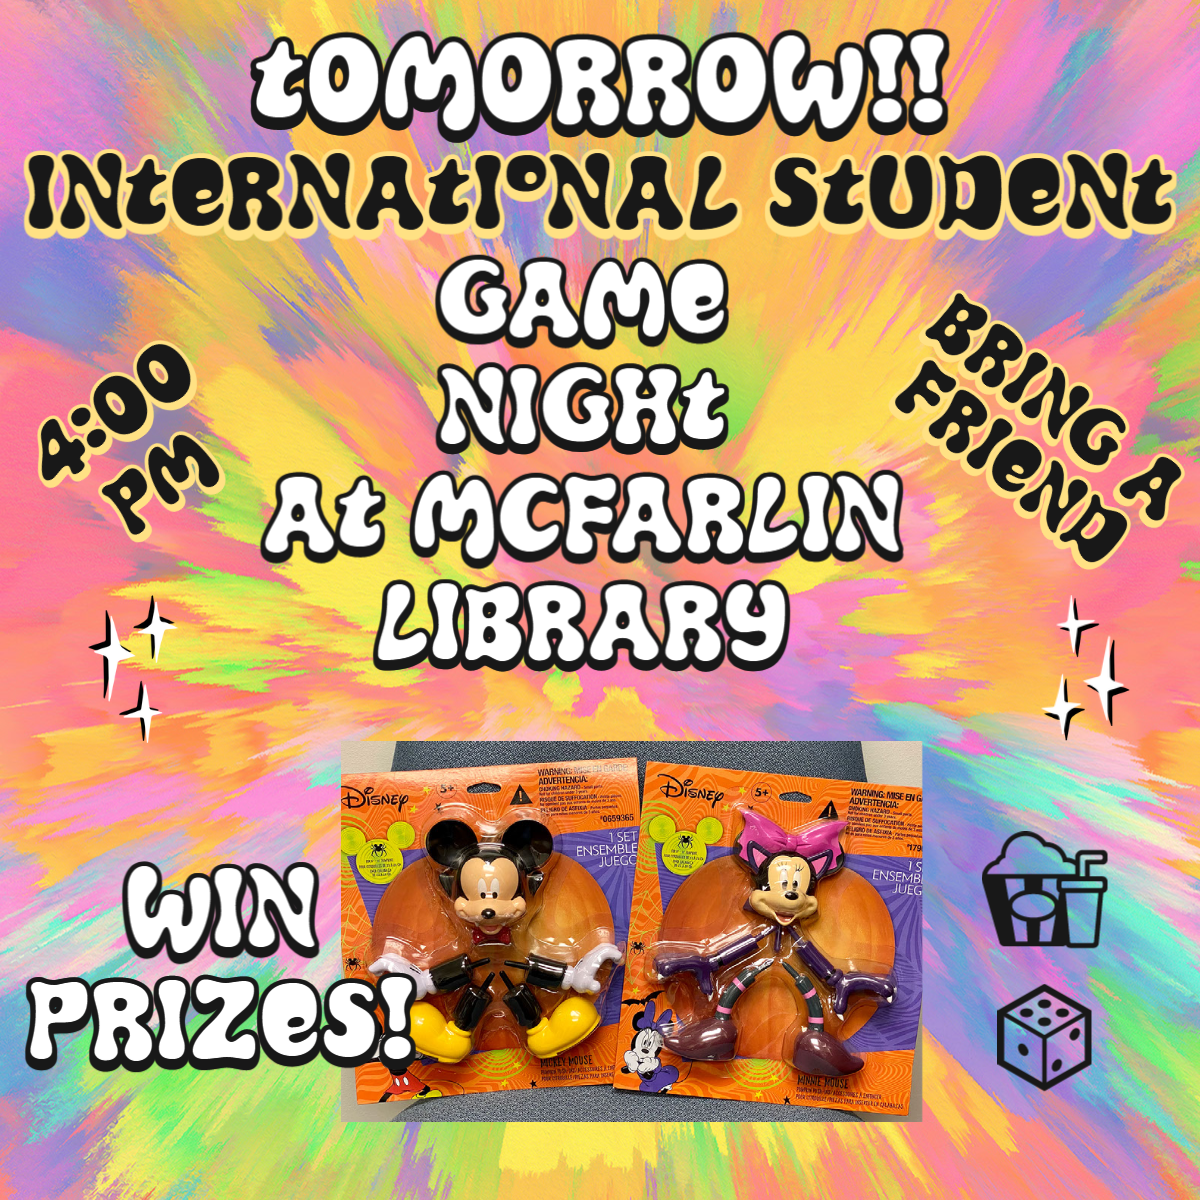 International student game night. October 21st at 4 p.m. in McFarlin Library.